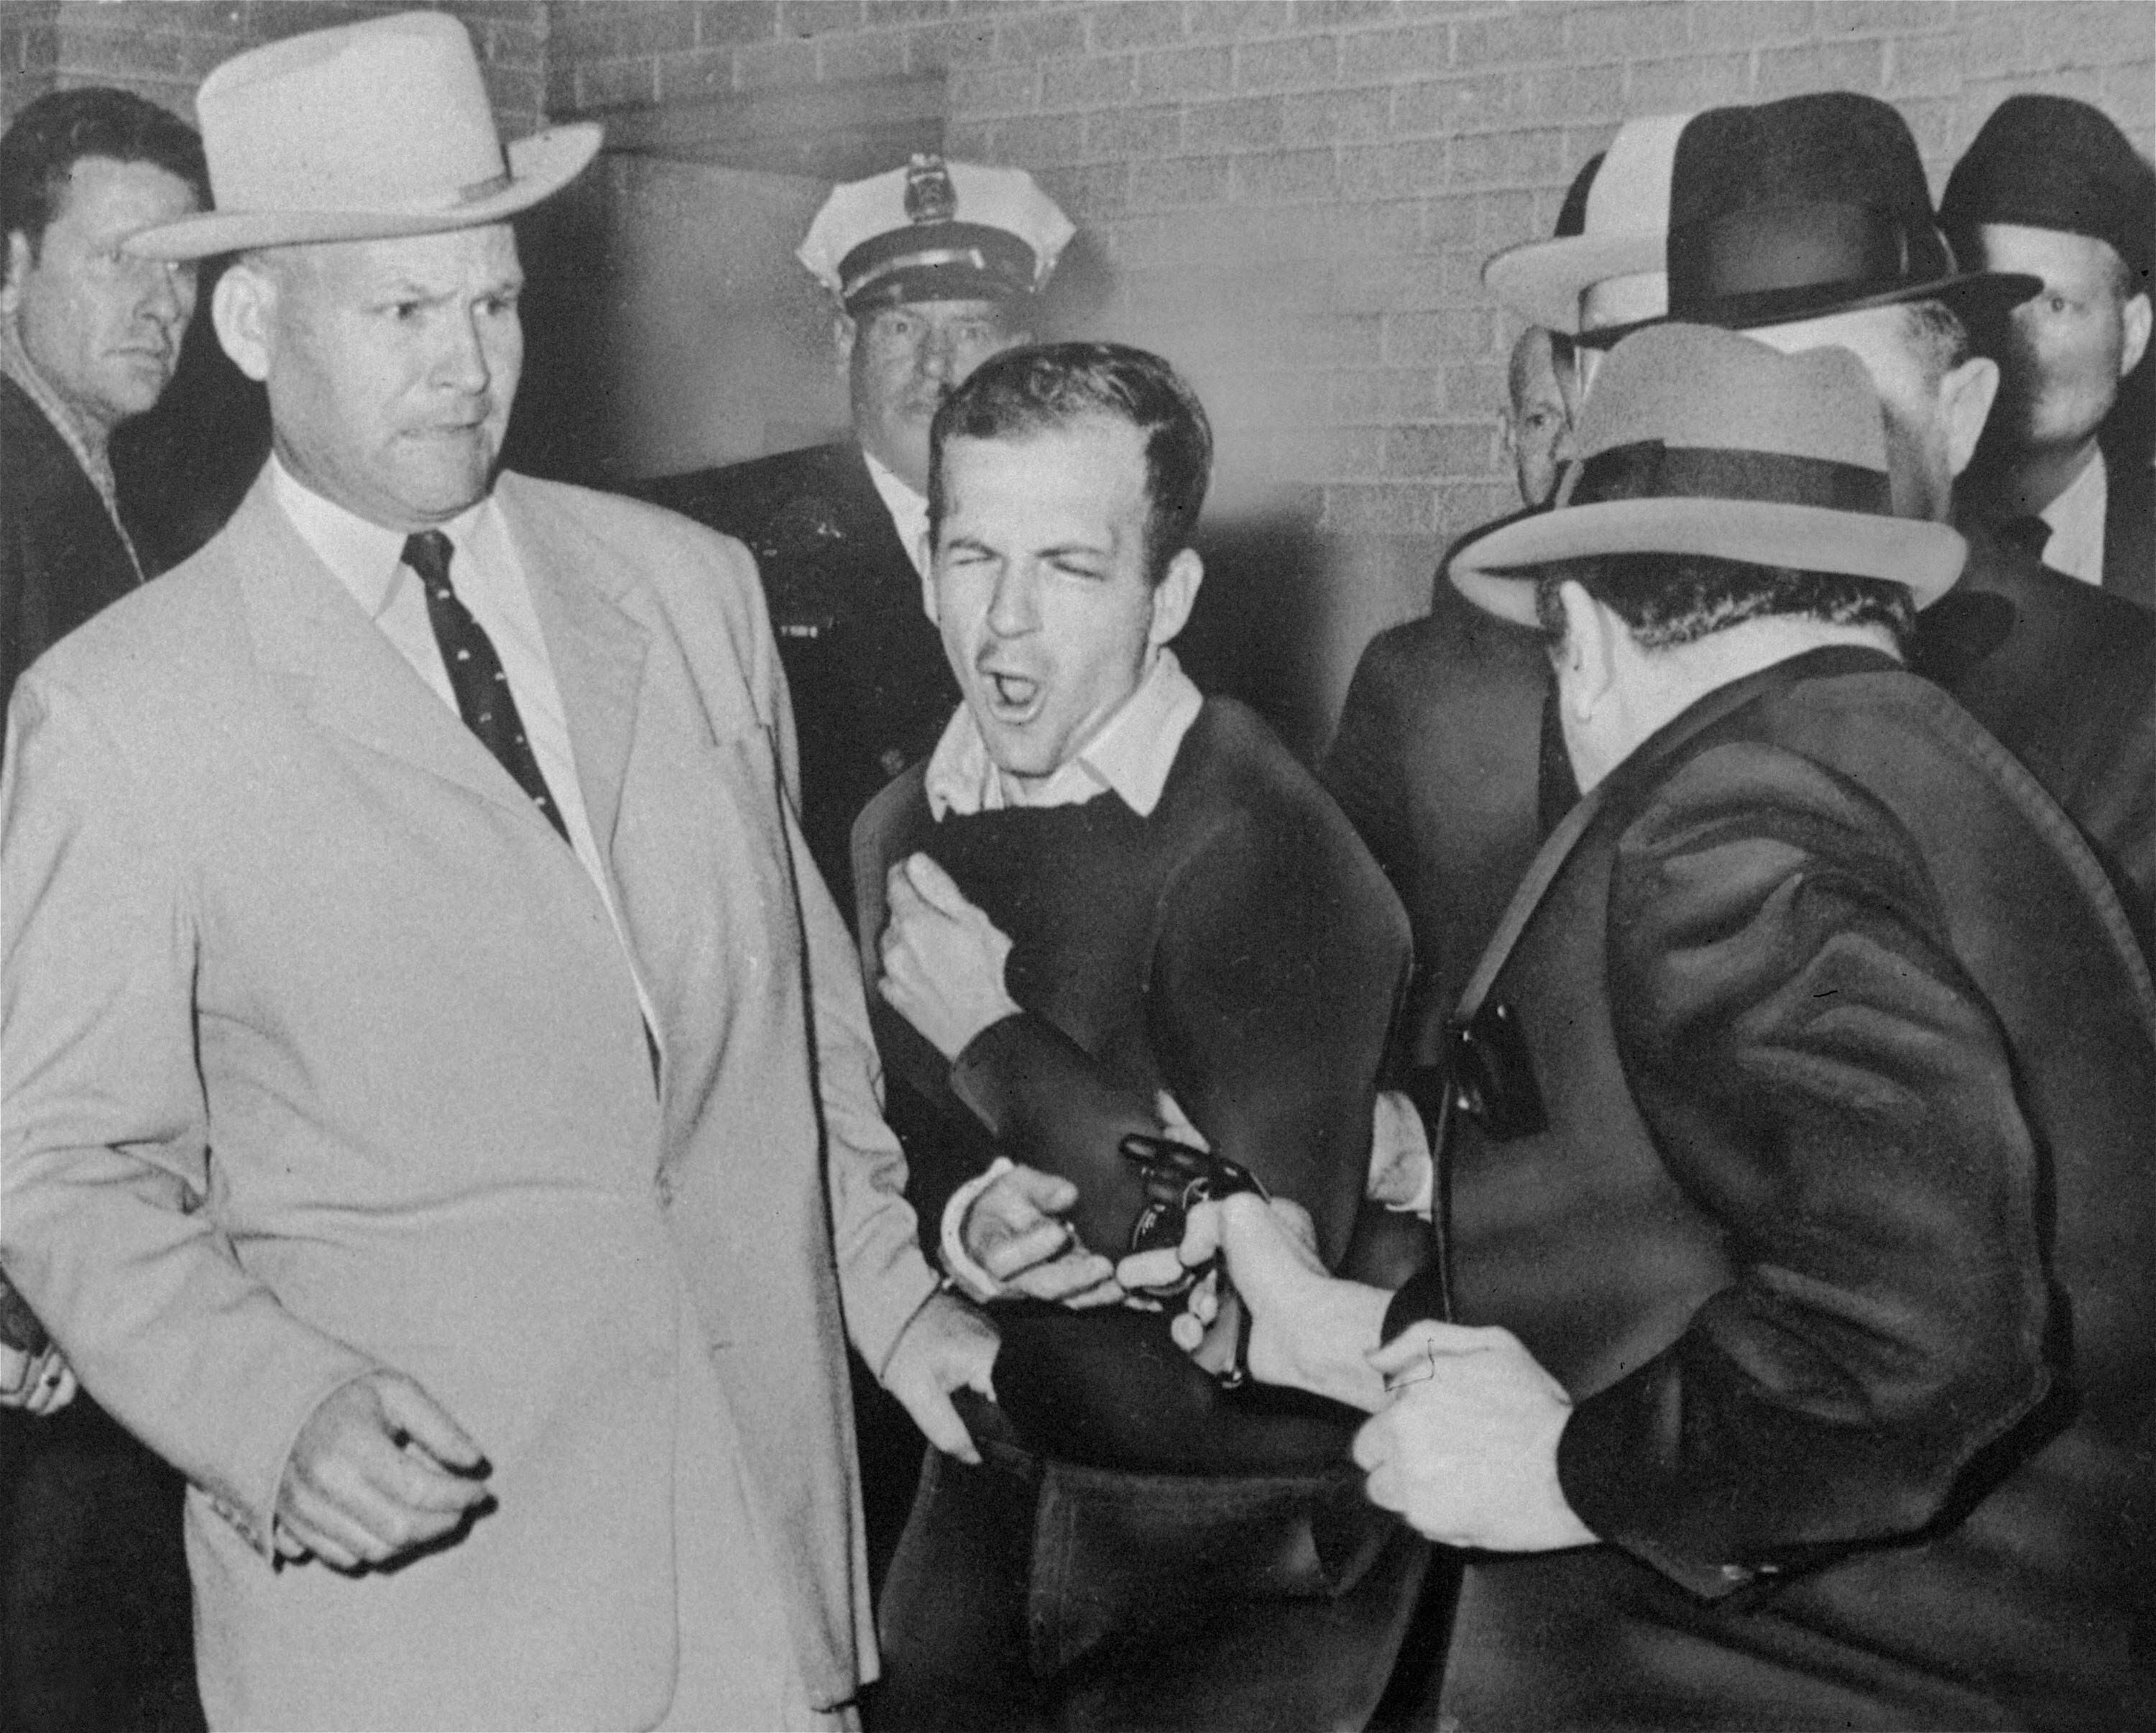 Lee Harvey Oswald, the assassin of President John F. Kennedy, reacts as Dallas night club owner Jack Ruby, foreground, shoots